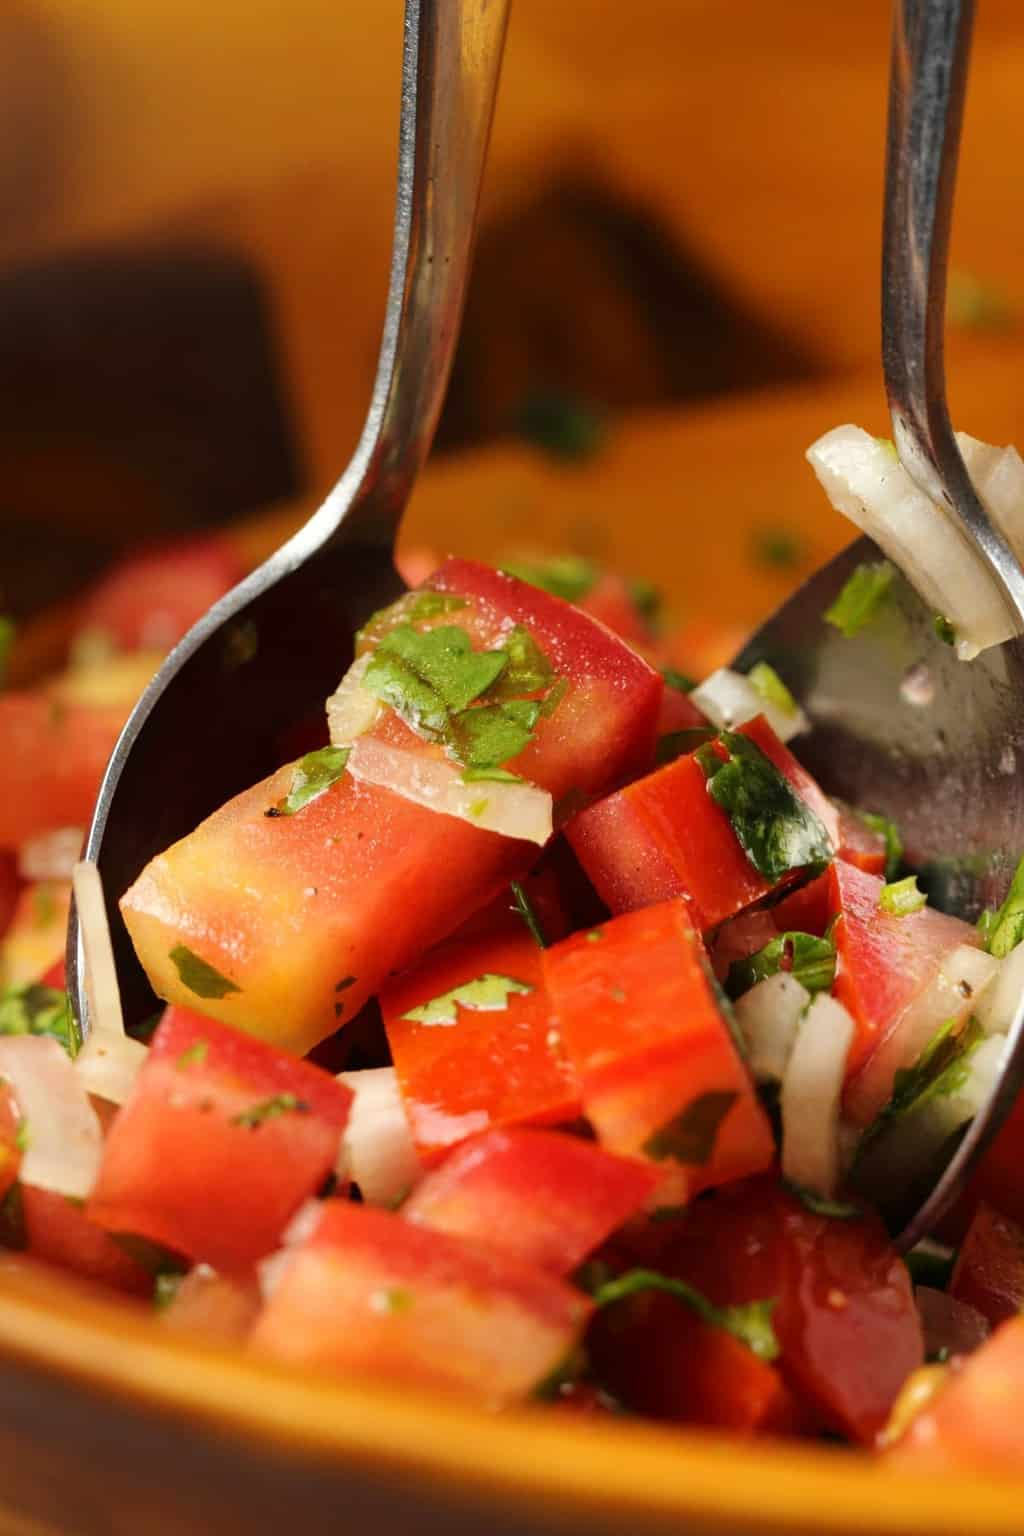 Pico de gallo in a wooden bowl with salad spoons.